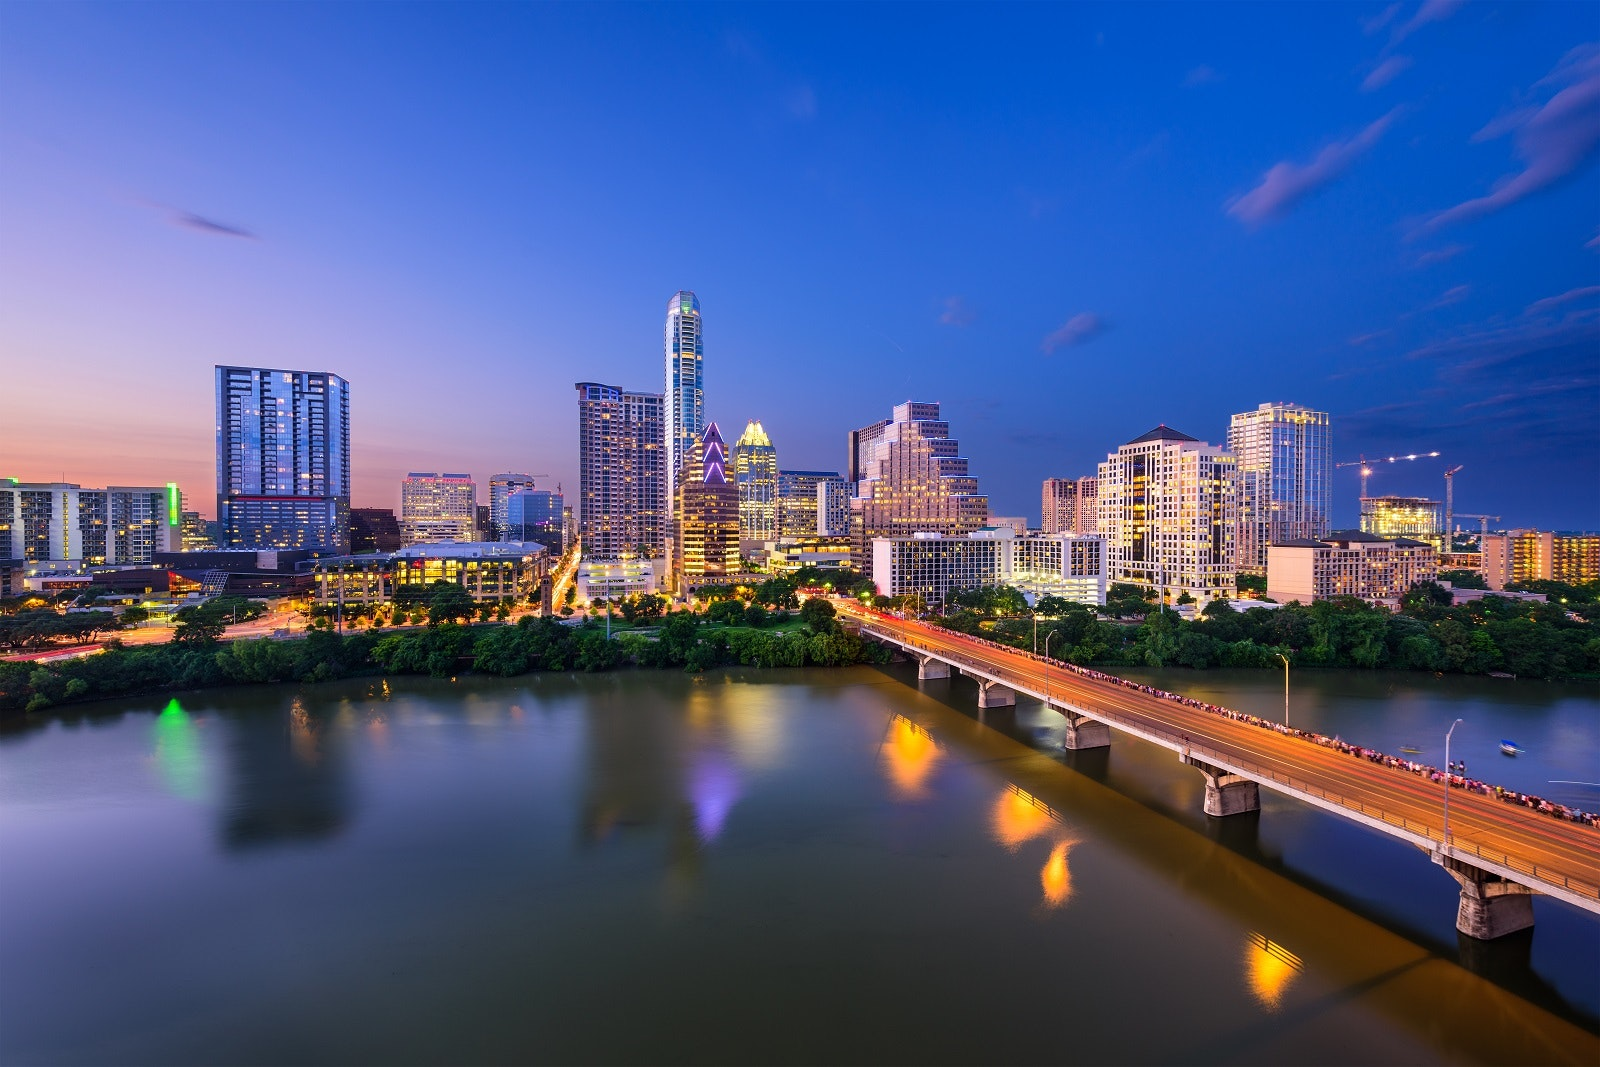 Austin at night © SeanPavonePhoto / Getty Images